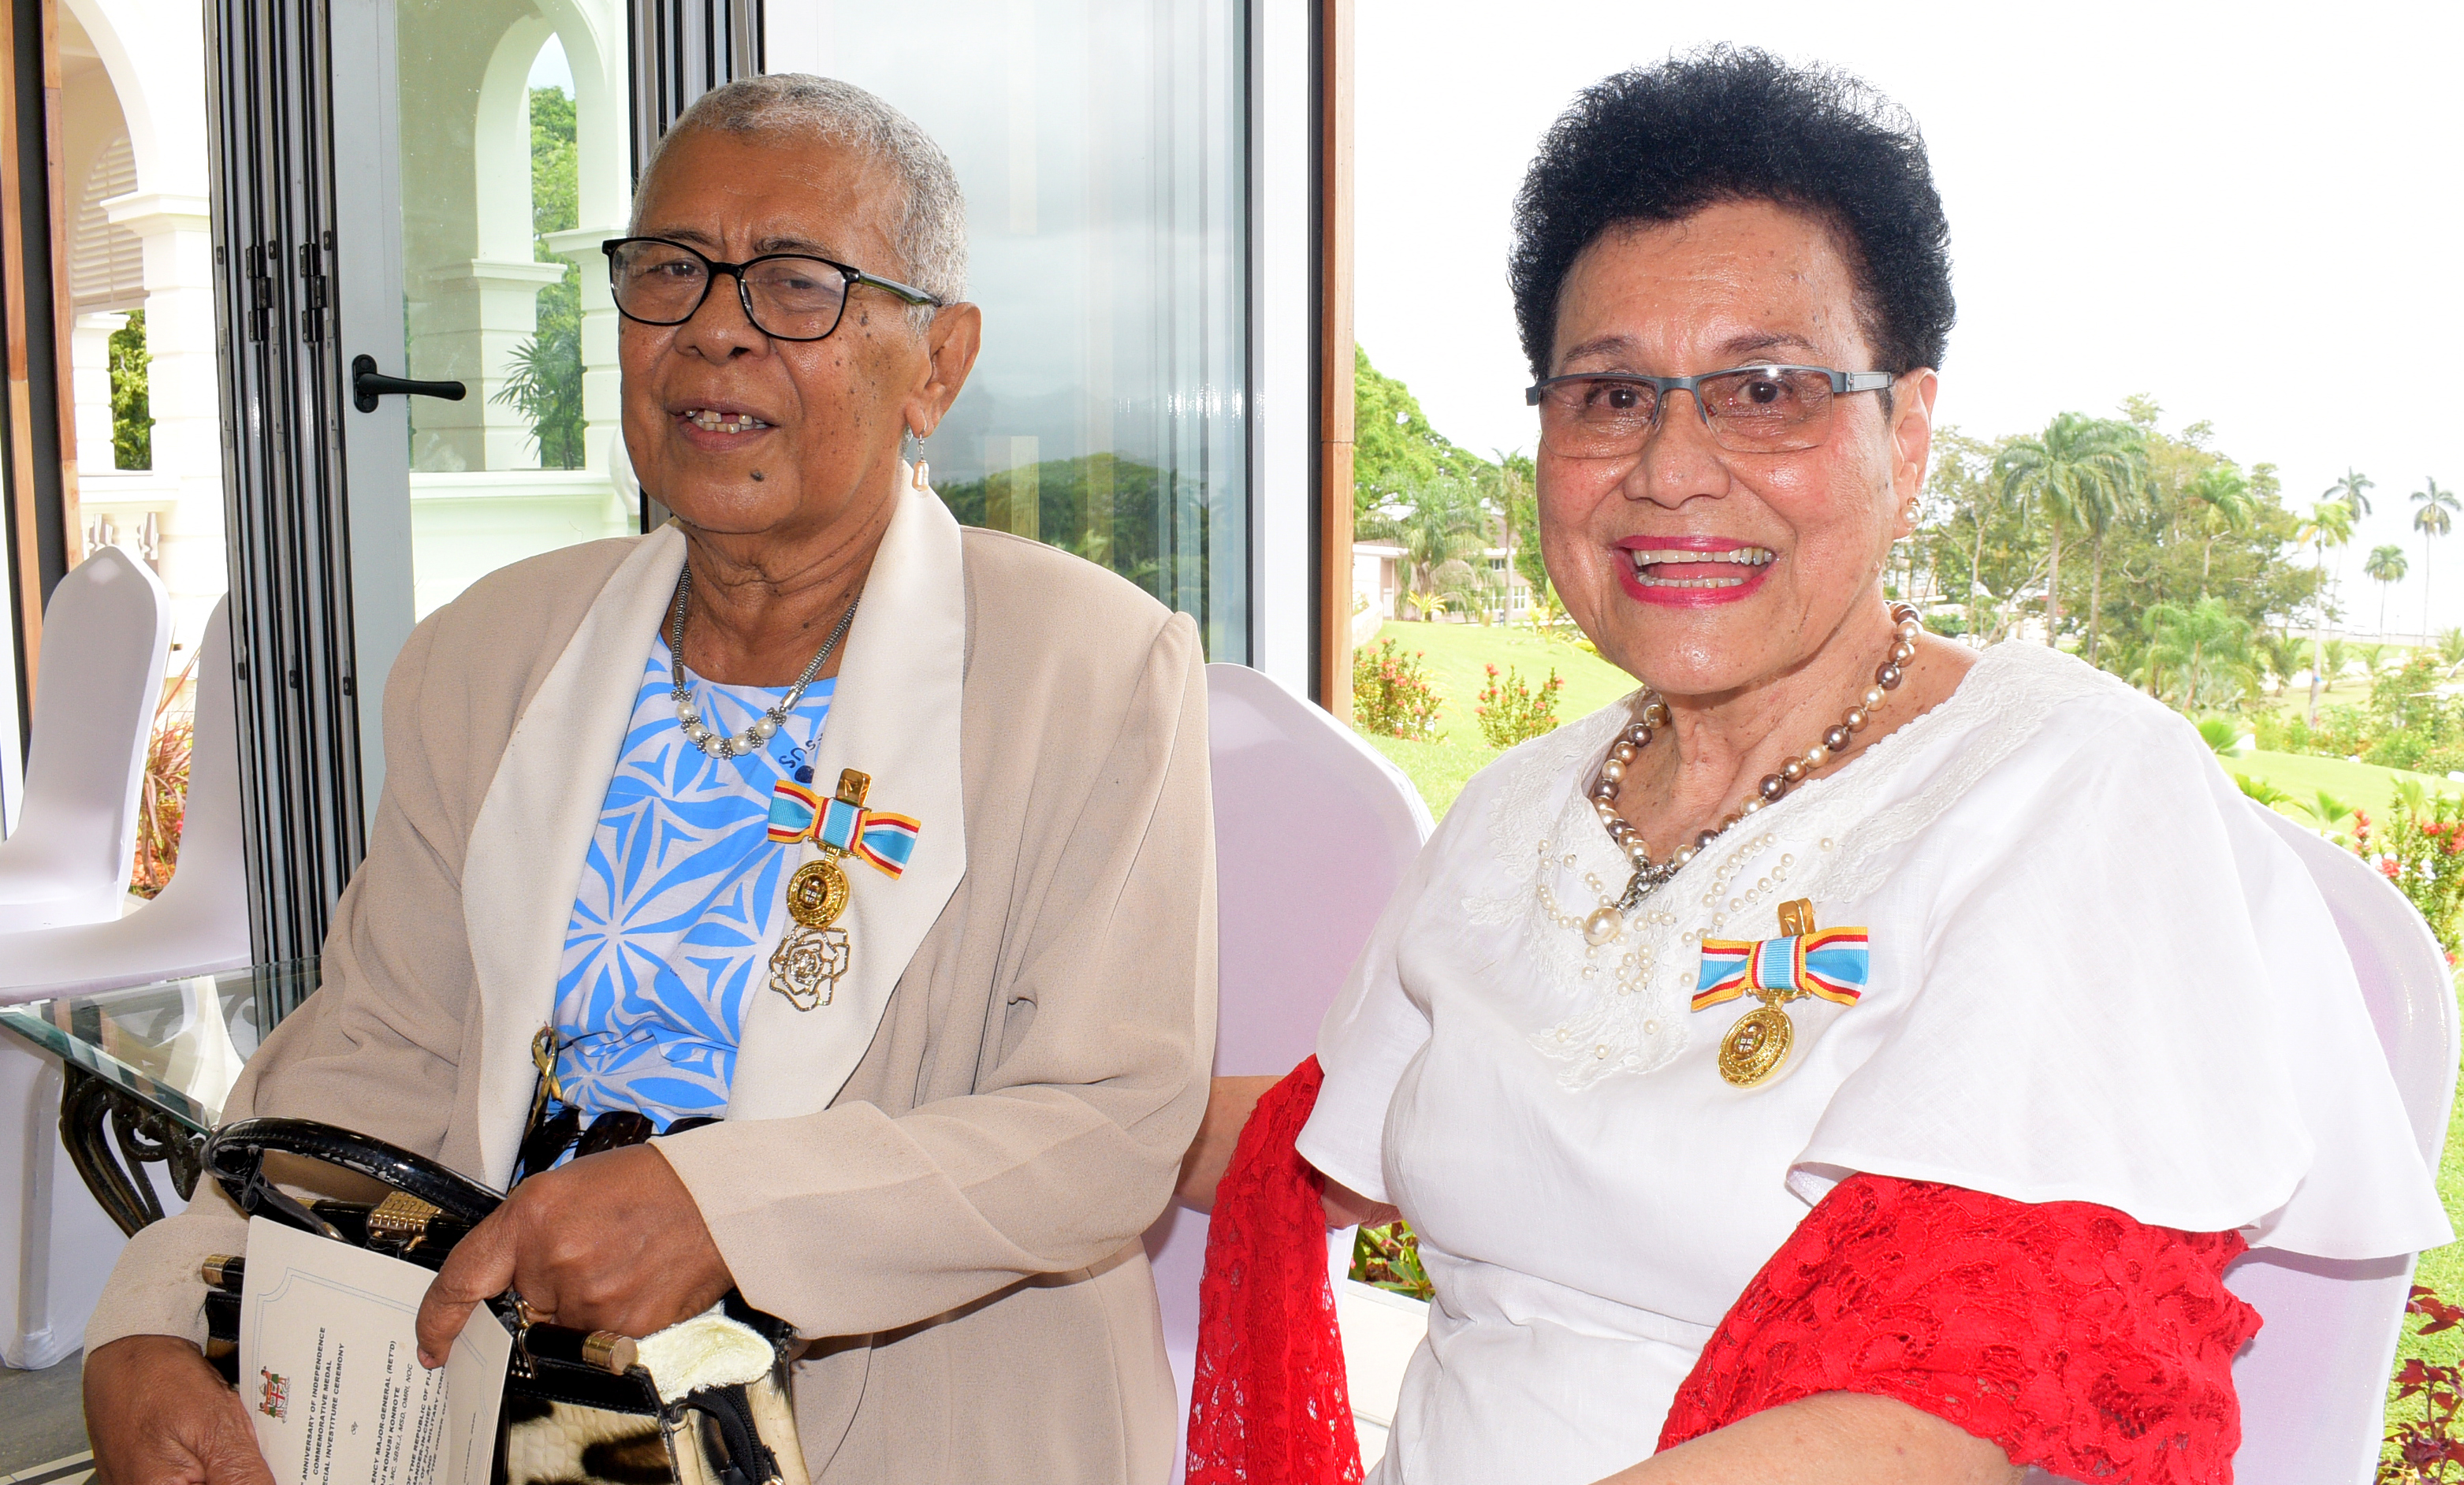 Susana Evening (left) and Dr. Mere Samisoni after receiving 50th anniversary of Independence commemorative medal from President Jioji Konrote during special investiture ceremony at State House on October 13, 2020. Photo: Ronald Kumar.